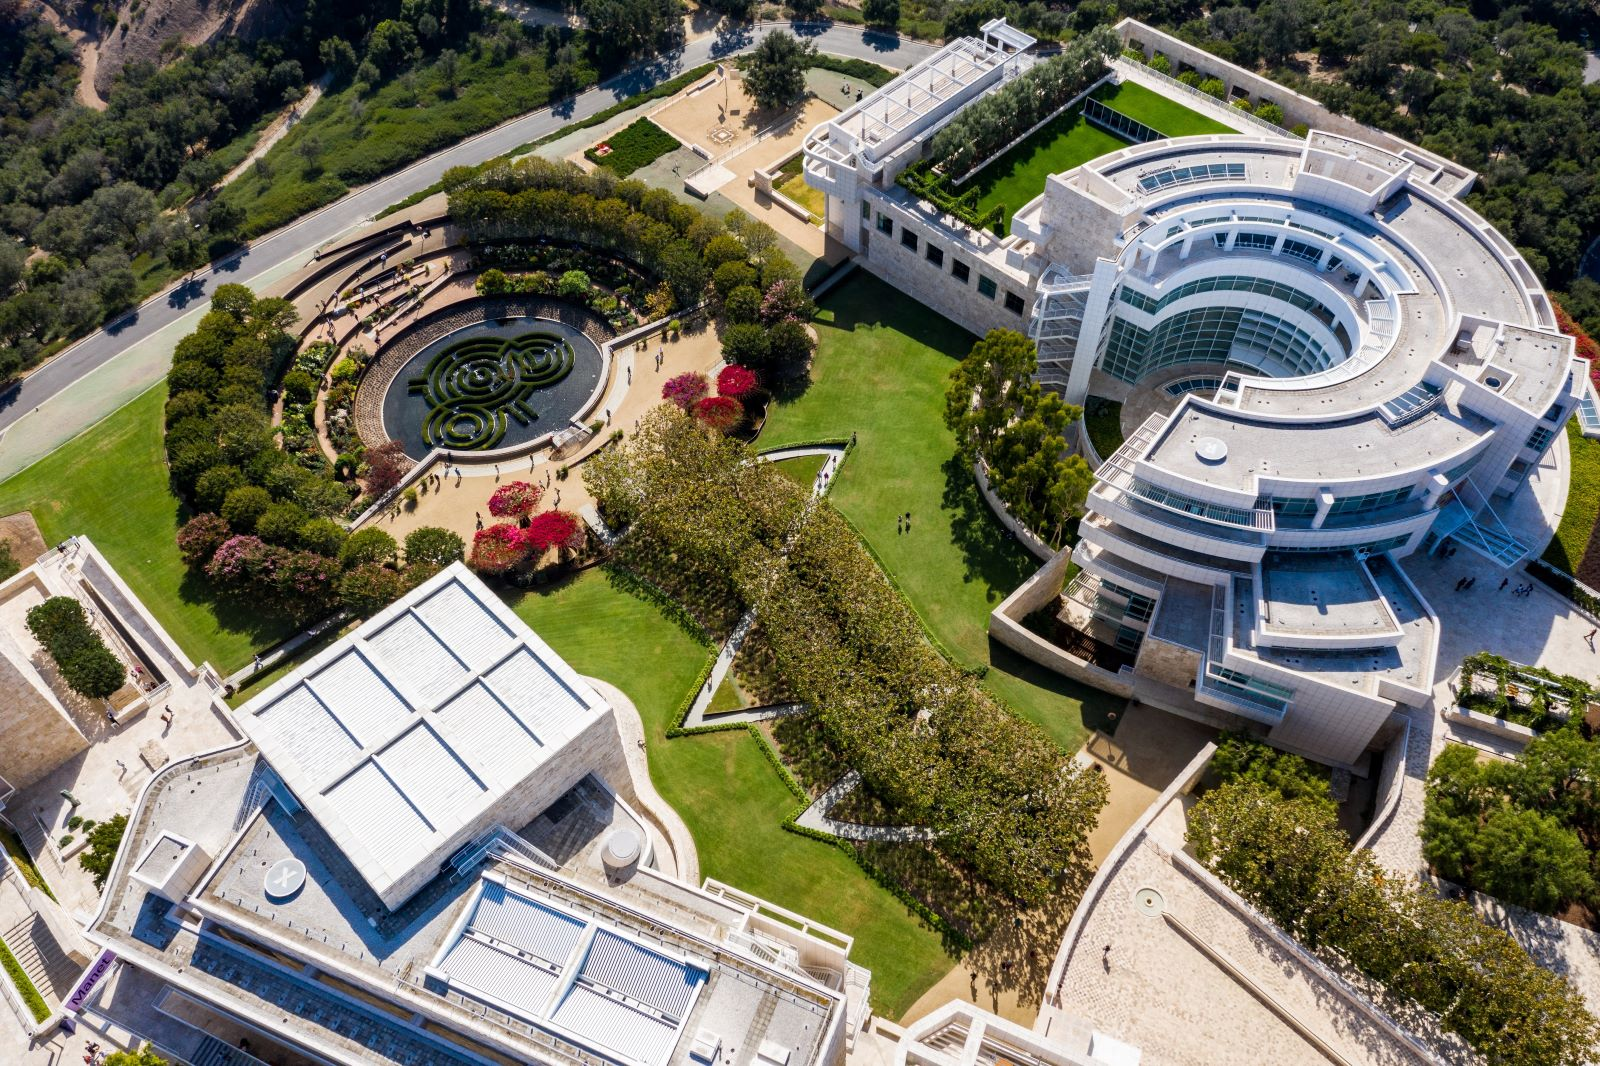 Aerial view of the Central Garden, Research Institute and Museum special exhibition space.